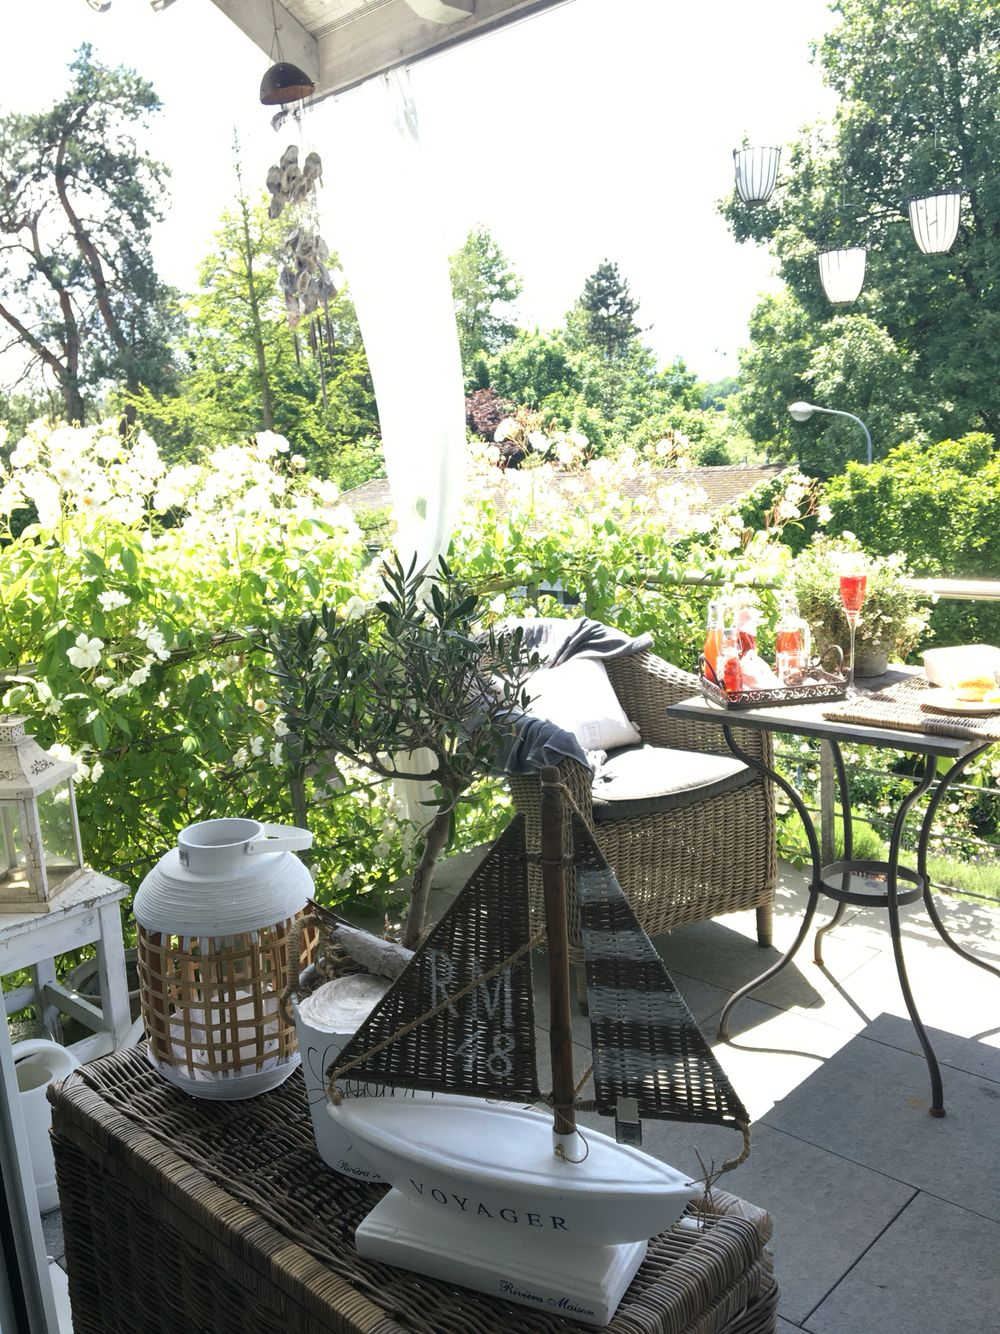 Charmant Terrace, Paradise, Patio, House Porch, Terraces, Deck, Deck, Tomatoes,  Heaven